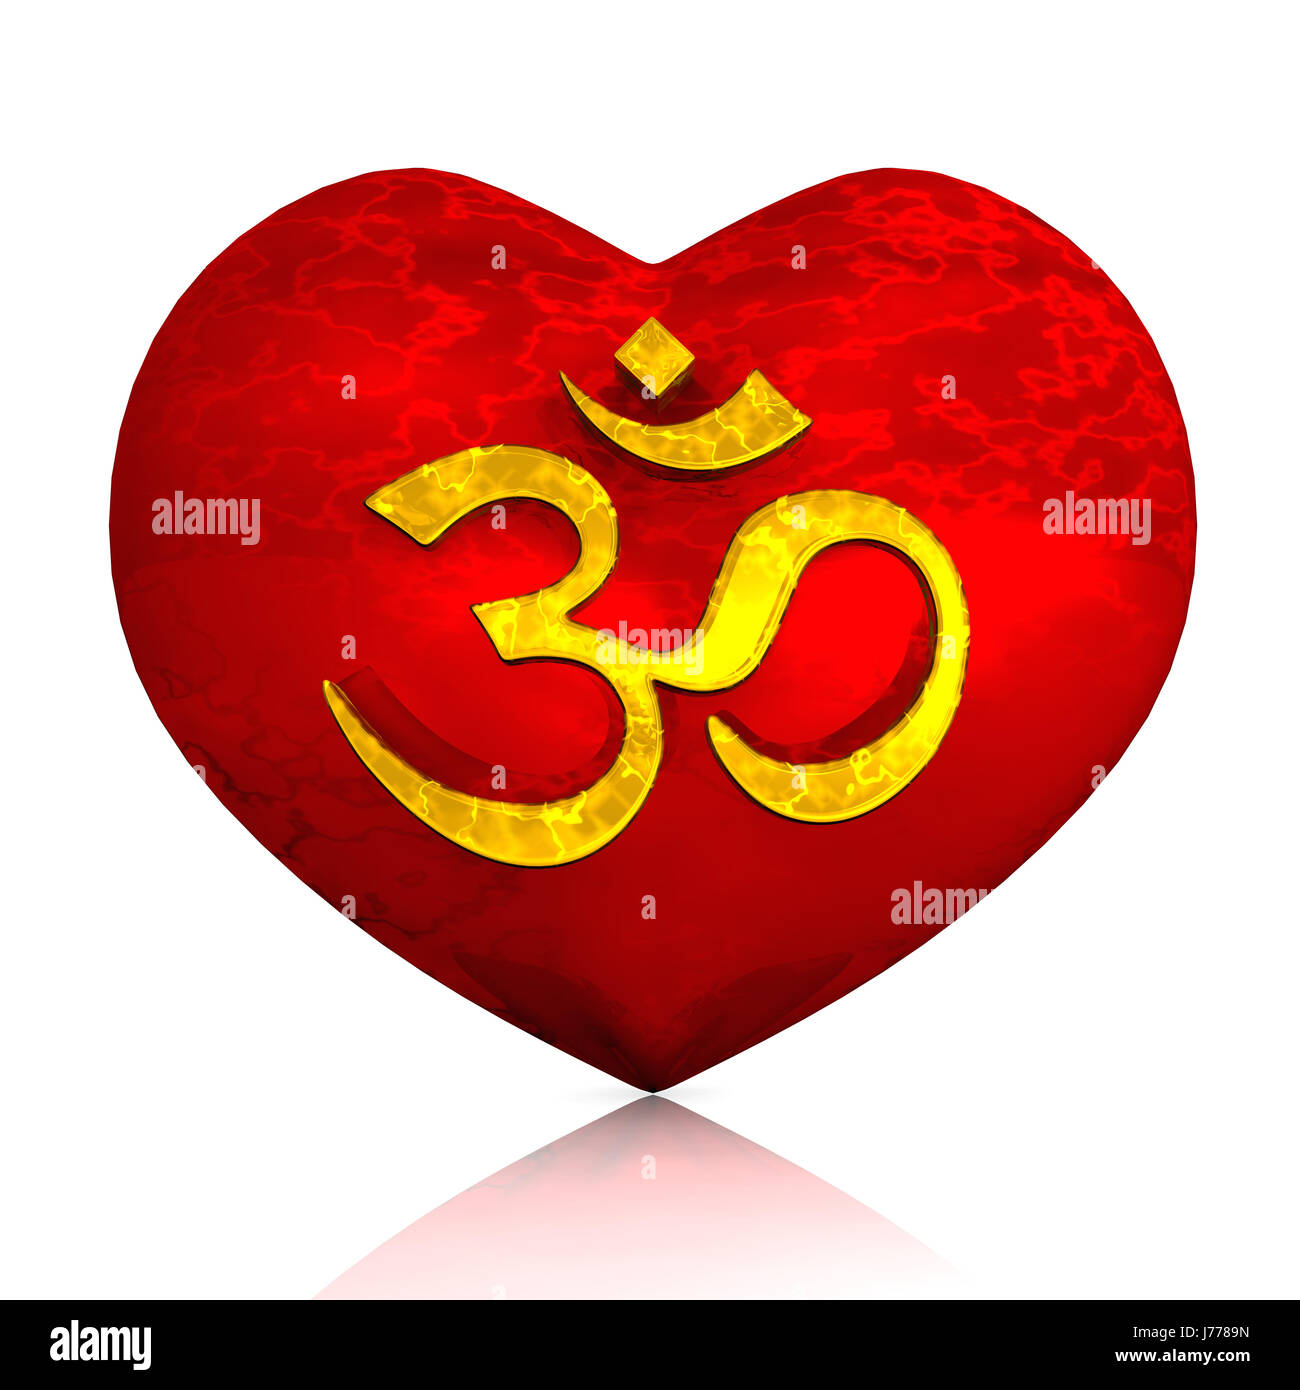 3d - om sign on red heart - Stock Image